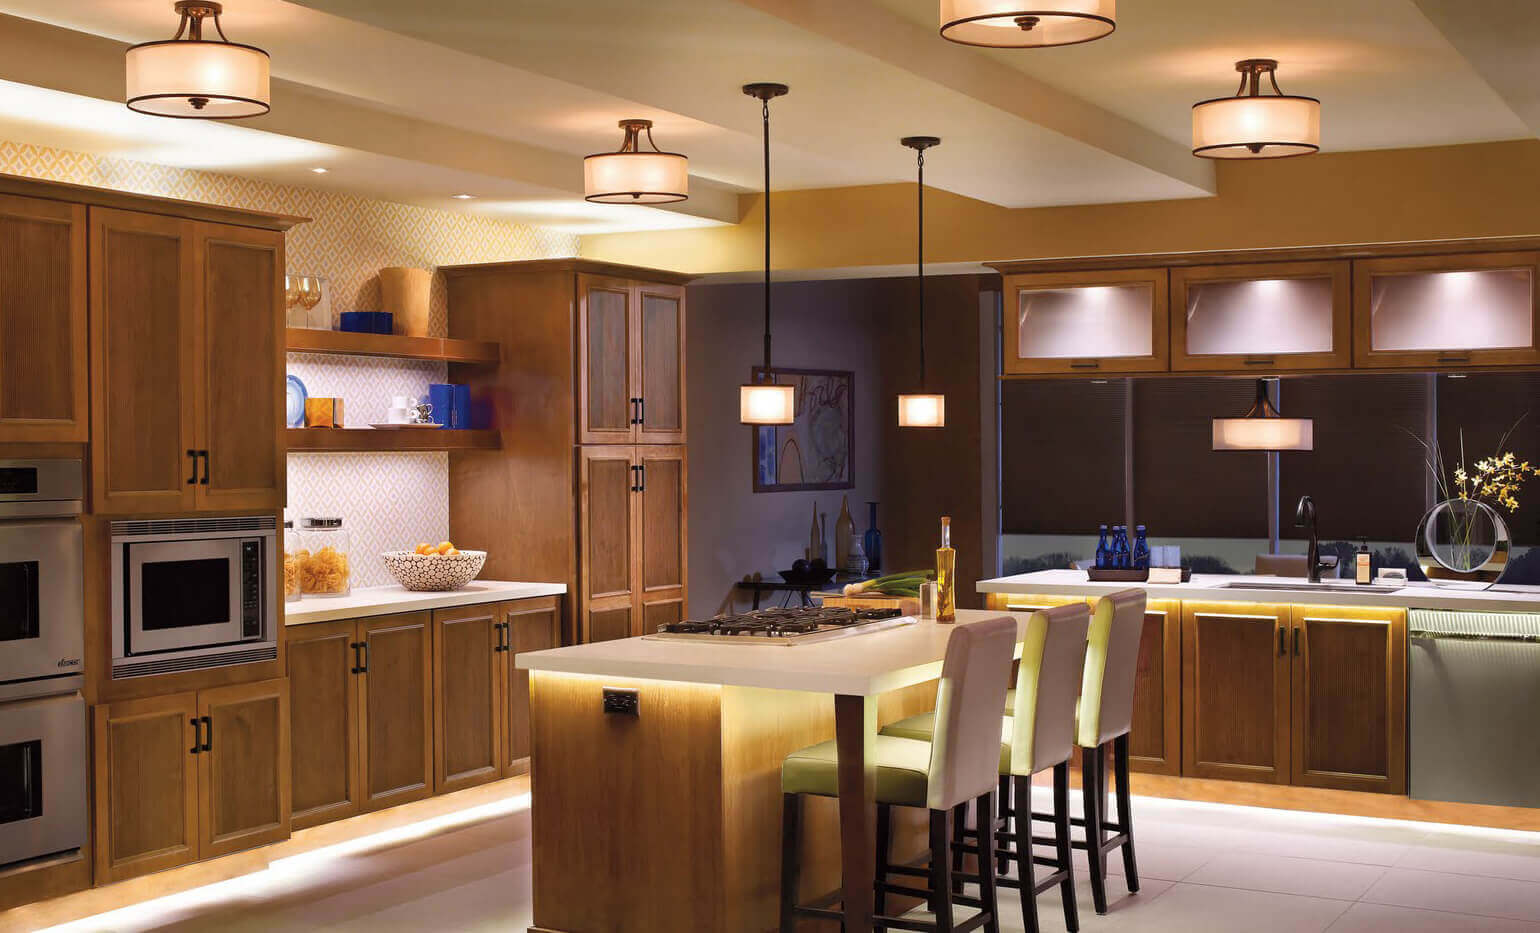 A mix of dark and light wood cabinets throughout this space stands out in contrast from the white backdrop. The real eye catcher however, is the medium sized modern kitchen light fixtures that add to the modern ambiance